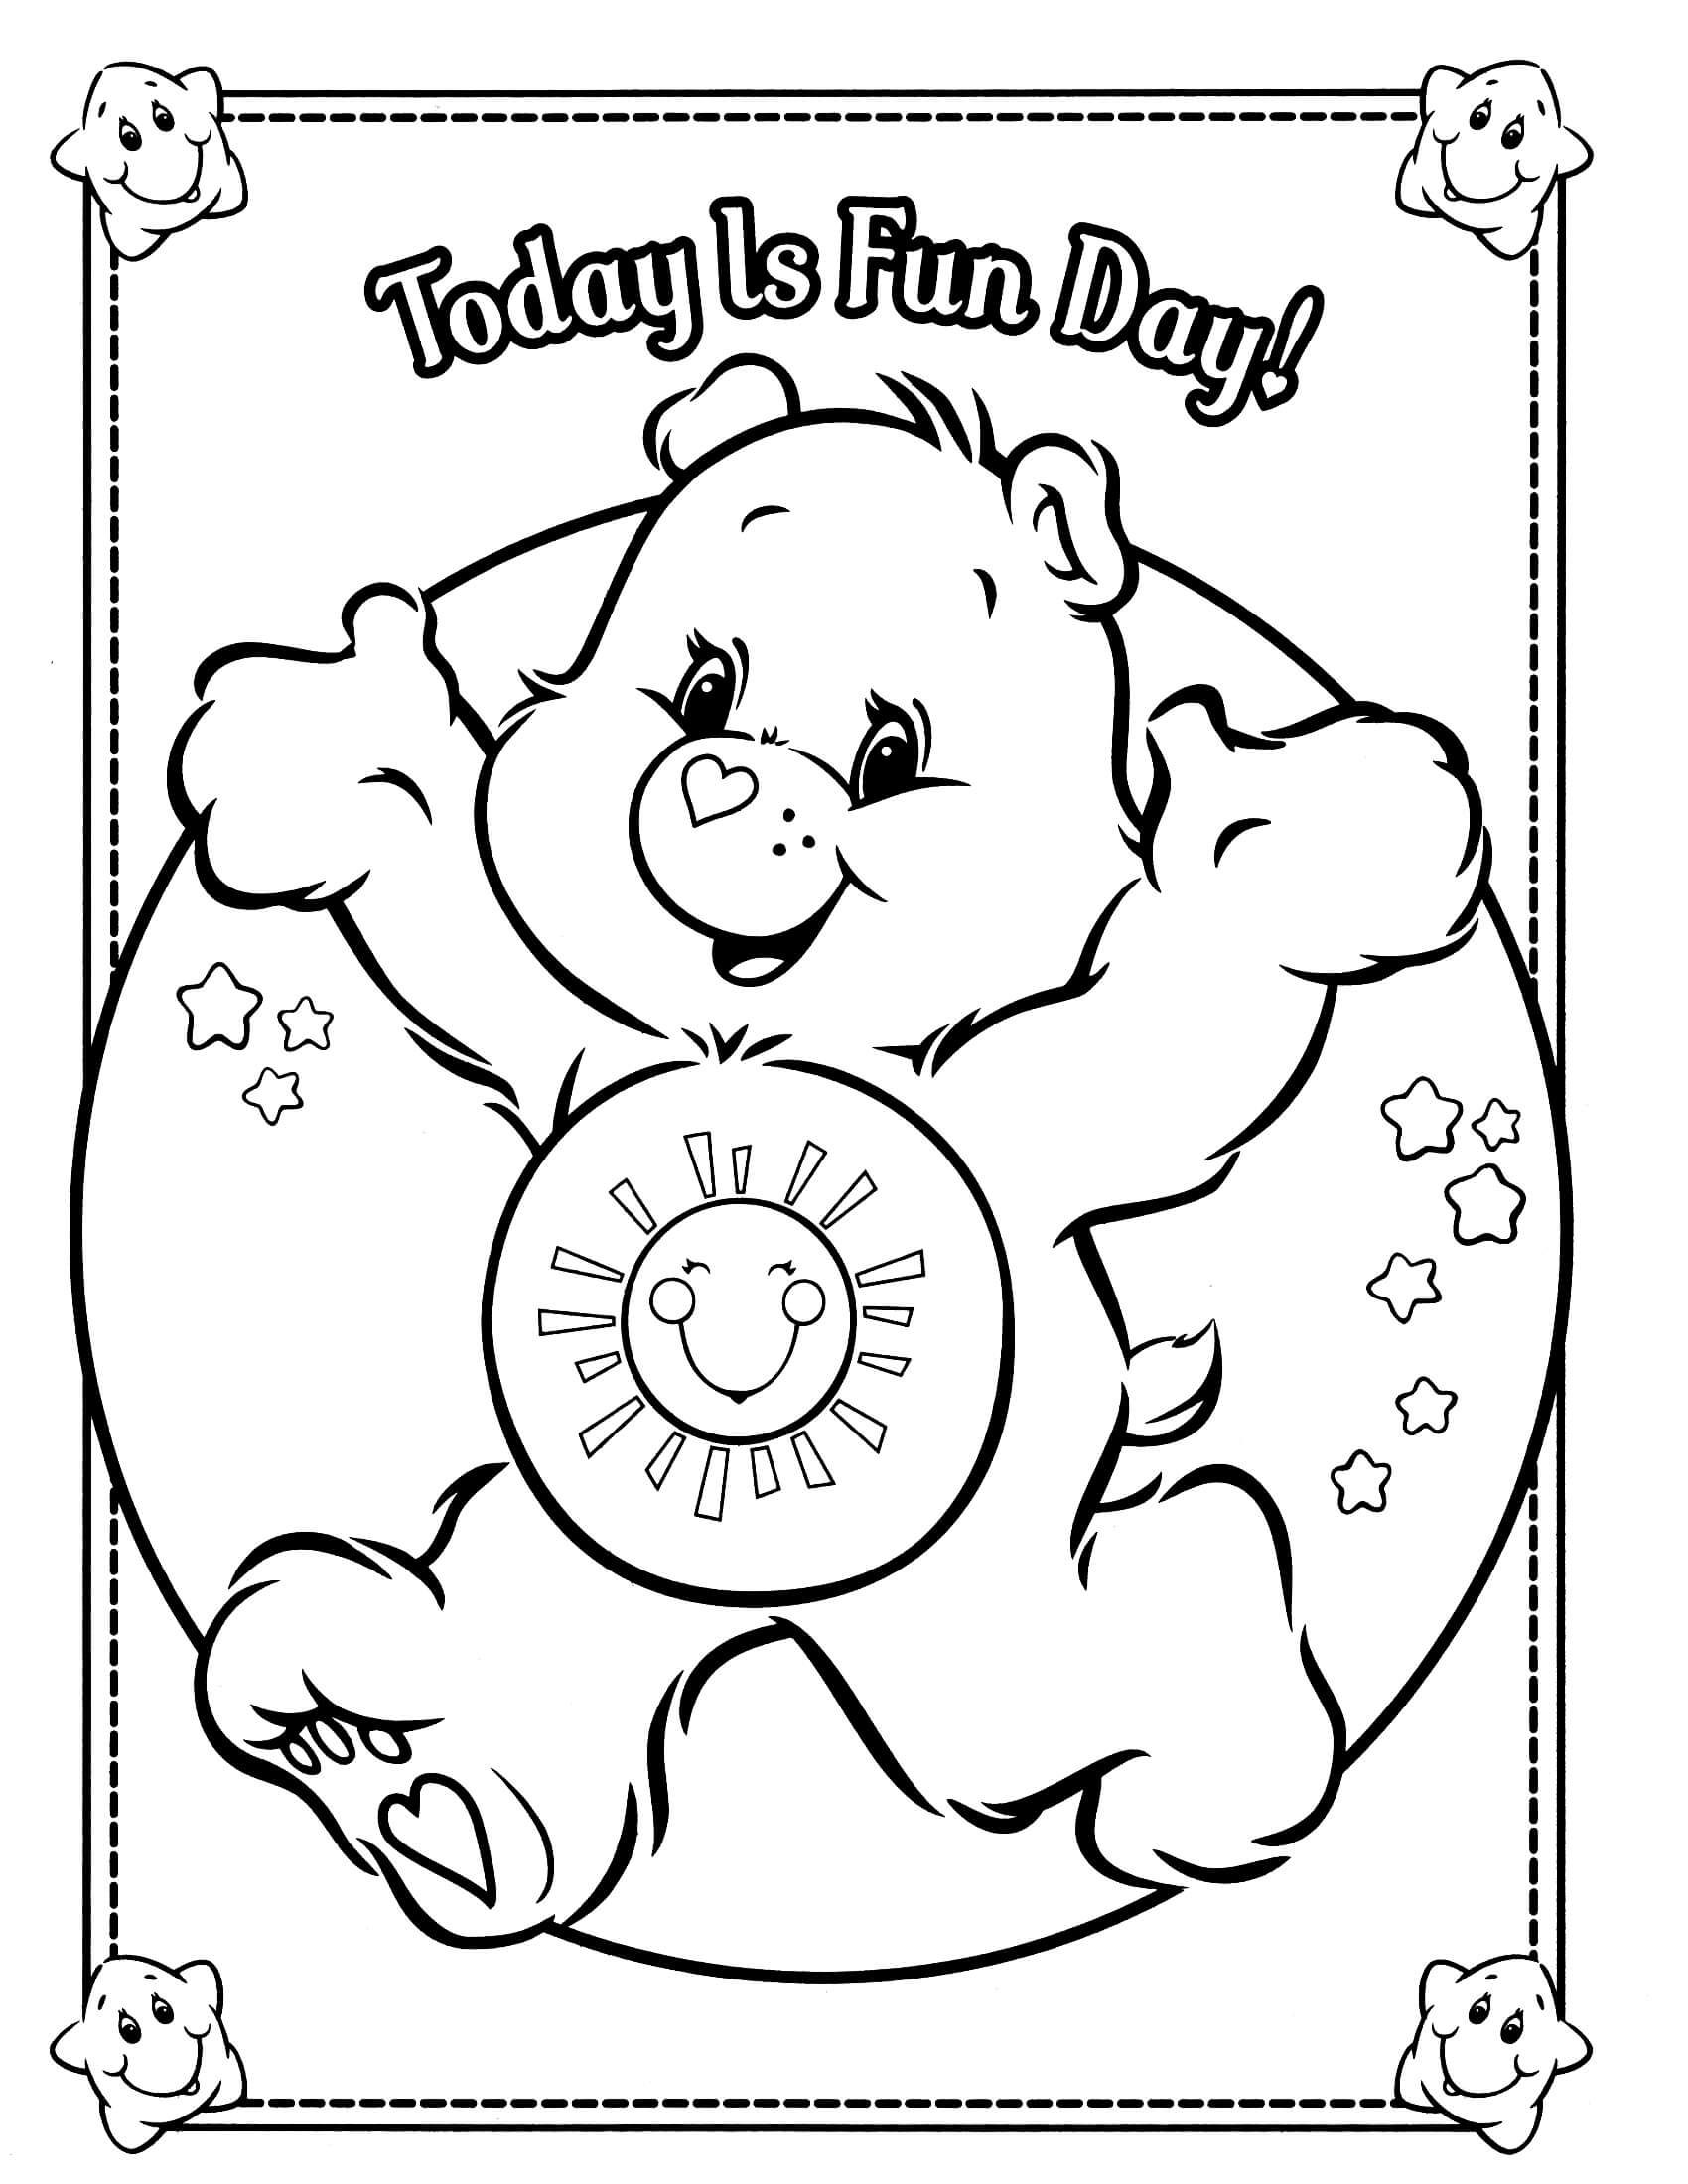 Funshine Bear Bear Coloring Pages Cute Coloring Pages Coloring Pages